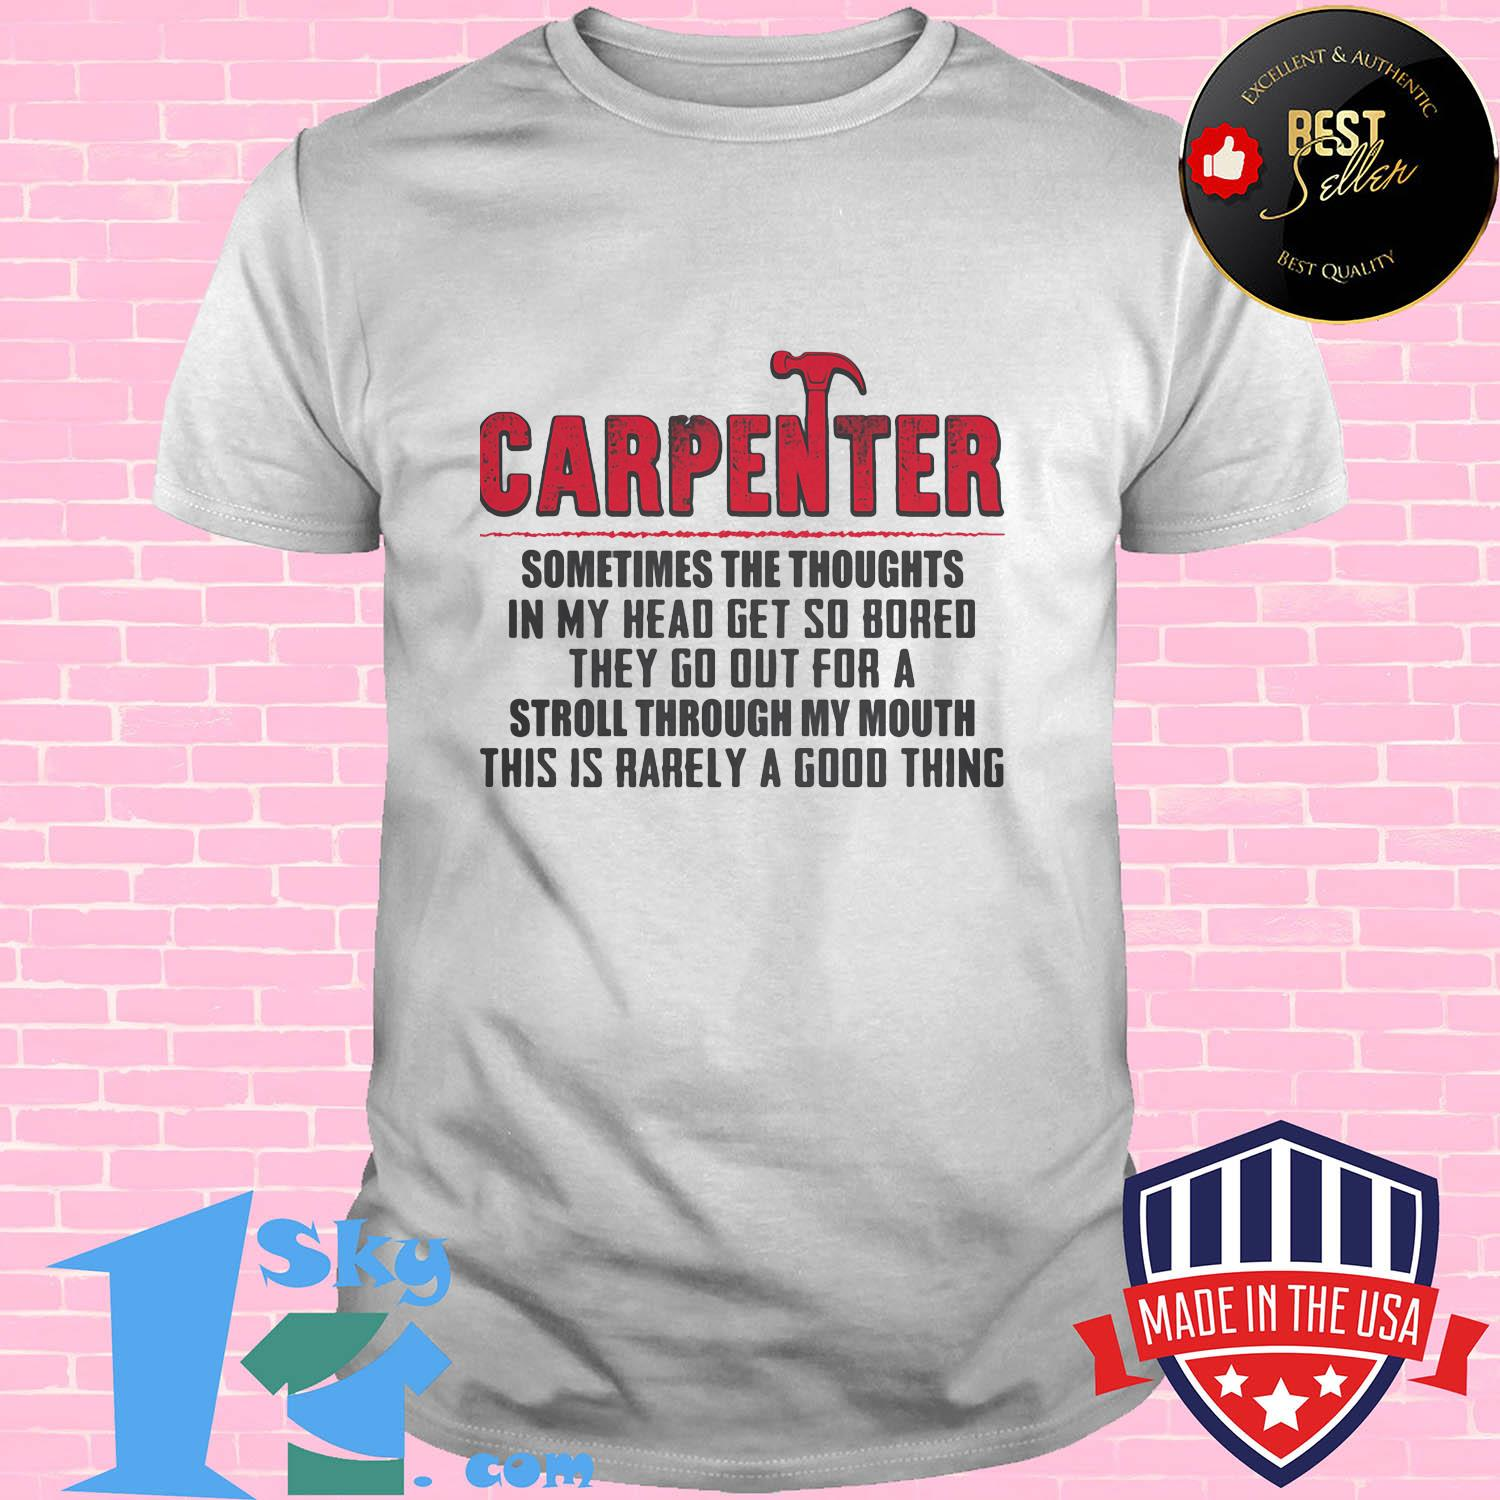 Carpenter sometimes the thoughts in my head get so bored they go out for a stroll through my mouth this is rarely a good thing shirt